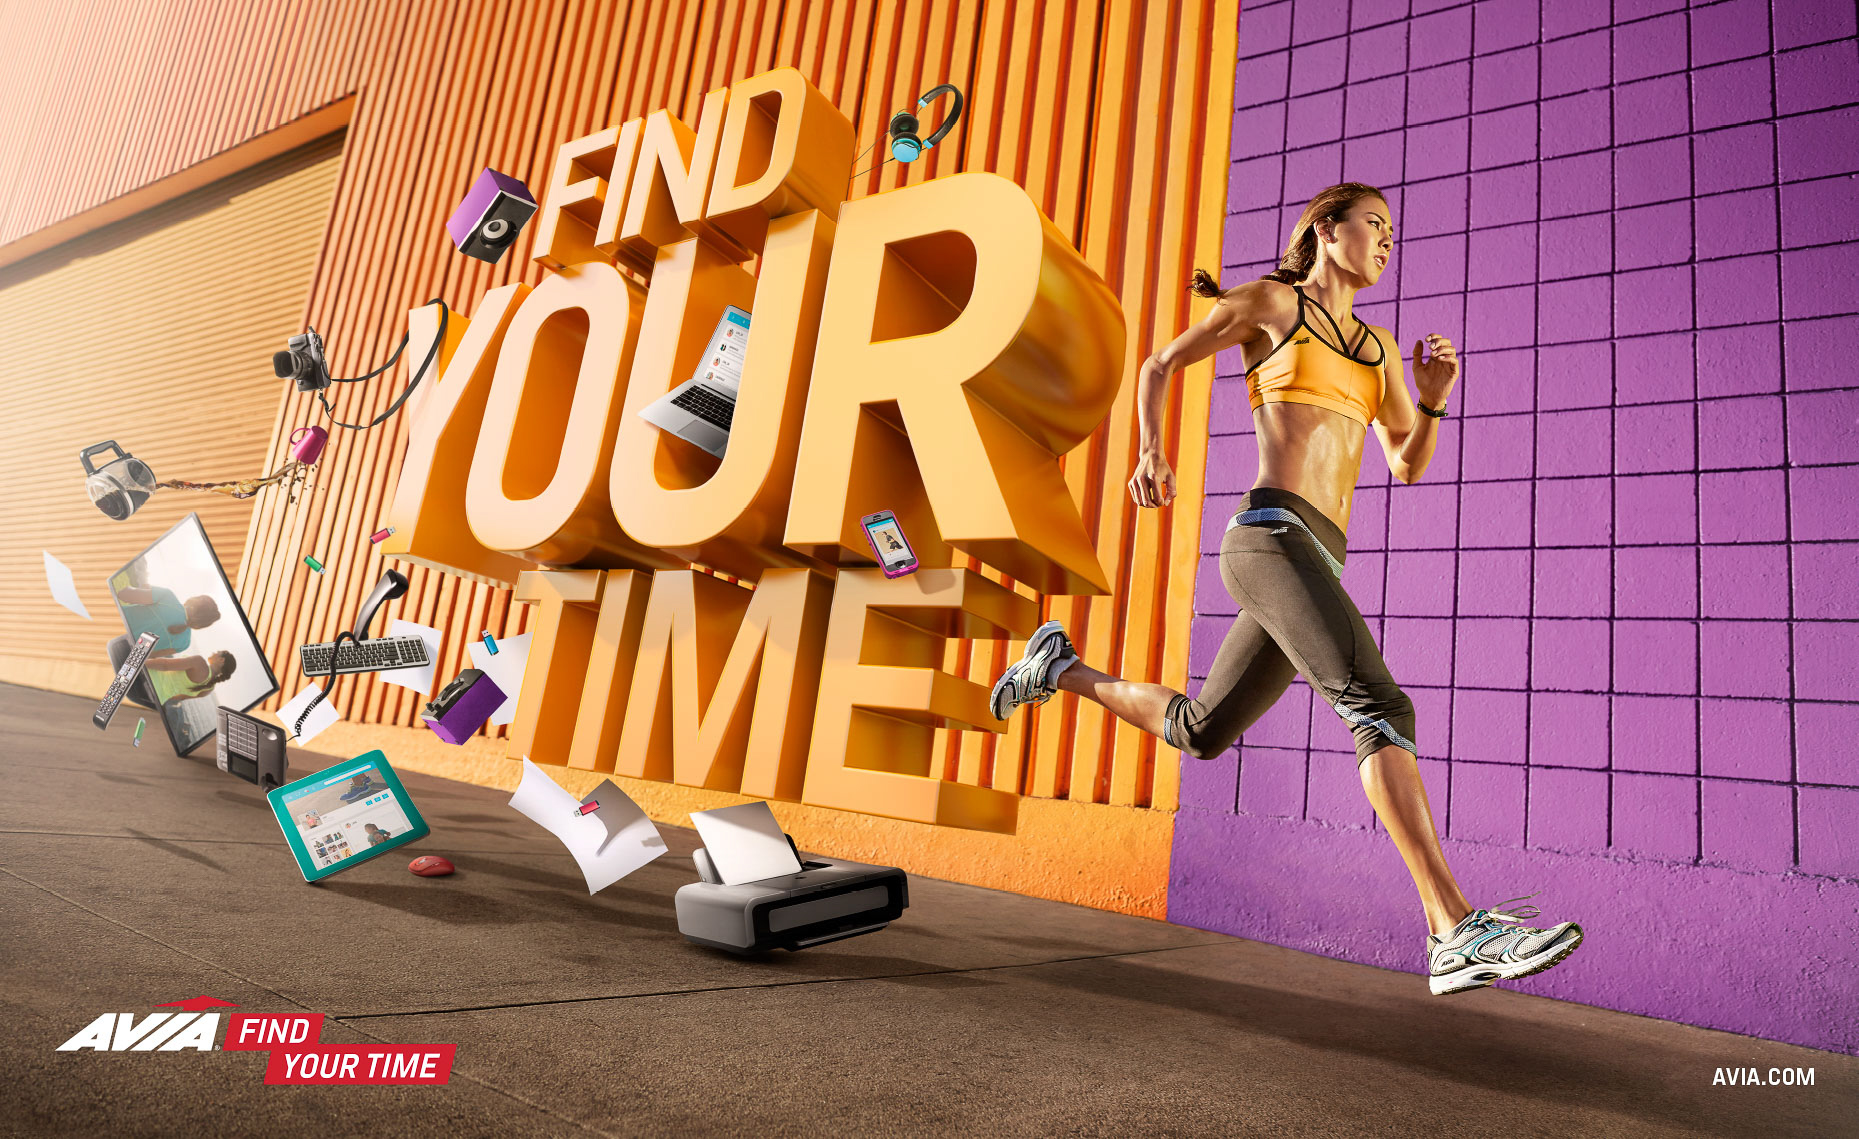 AVIA - FIND YOUR TIME Campaign PRINT ADS-1